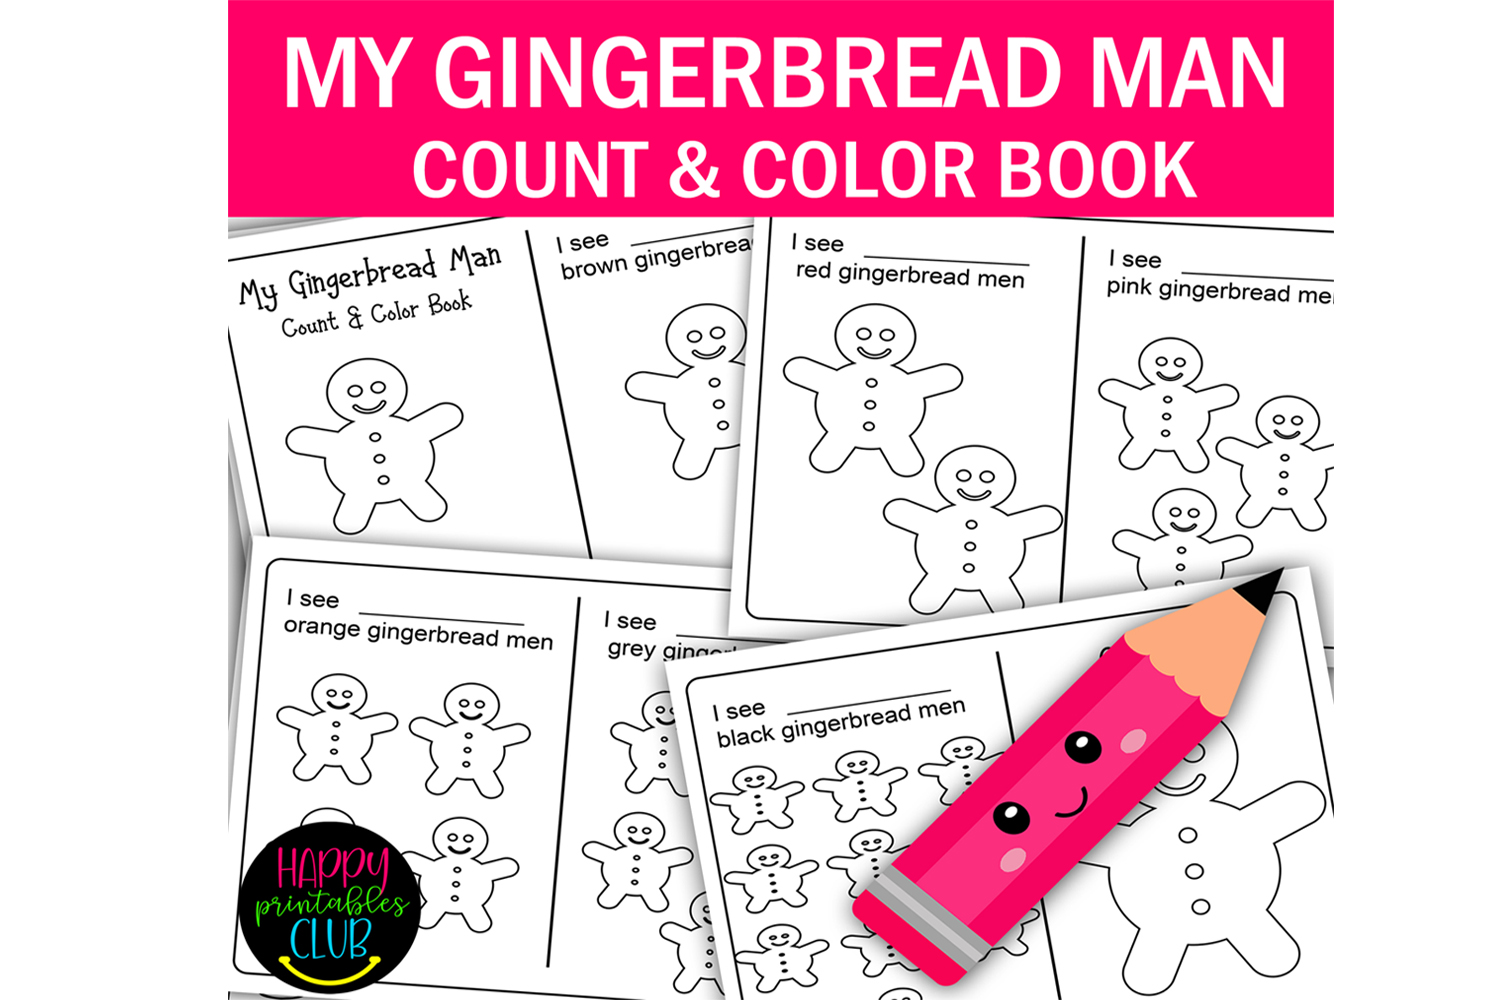 Gingerbread Man Count And Color Book Graphic By Happy